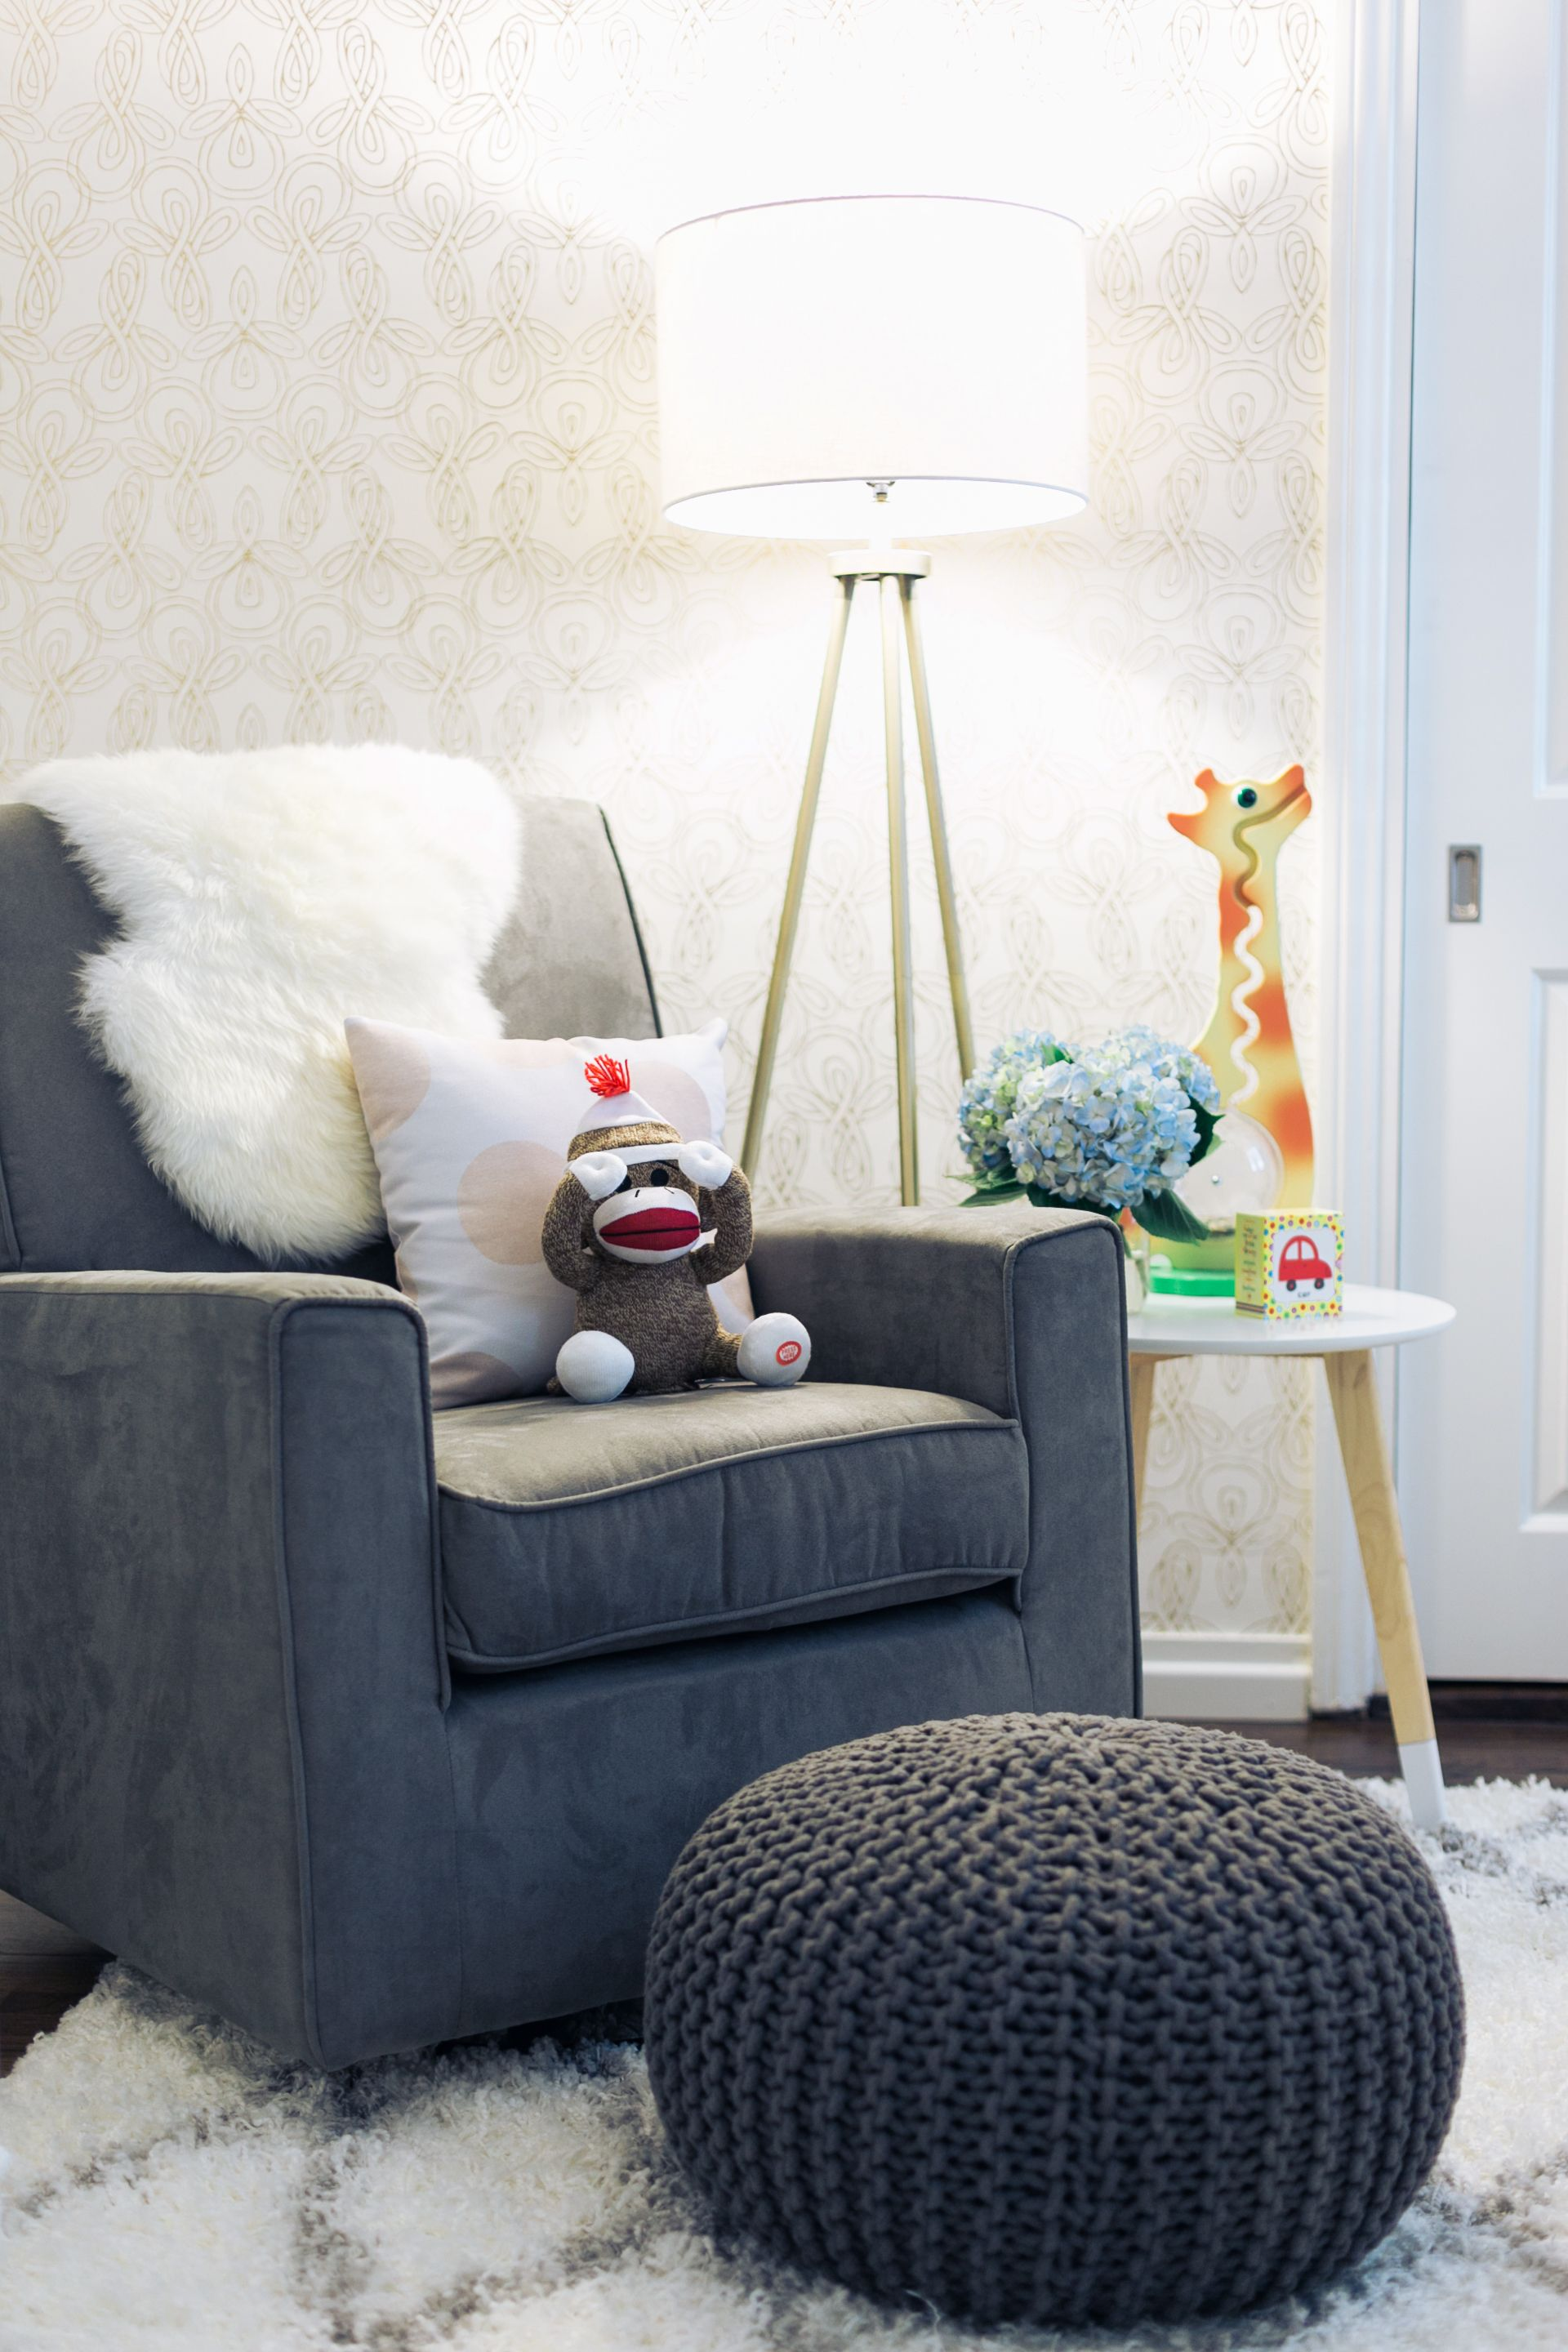 A Havenly Designed Nursery Is The Perfect Gift For New Mom No Stress Professional Design All As Low 79